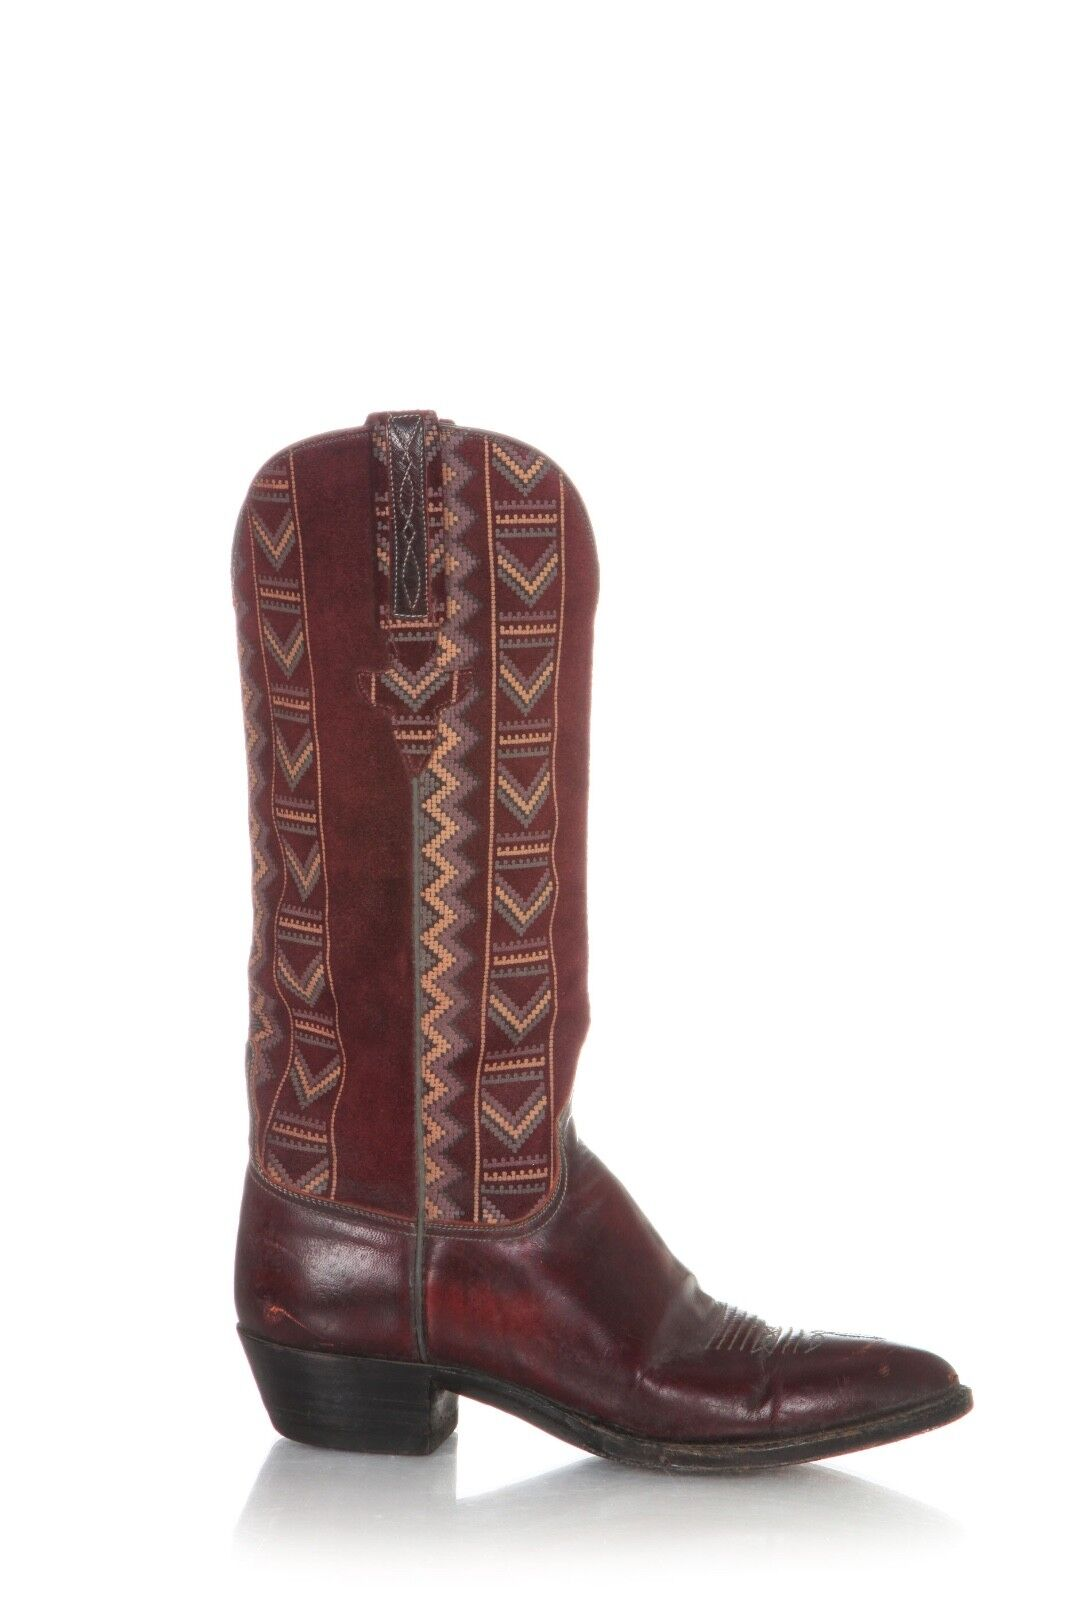 LUCCHESE Cowboy Stiefel Größe 7 7 7 Leather Suede Maroon rot Block Heel Pointed Toe 9010d3